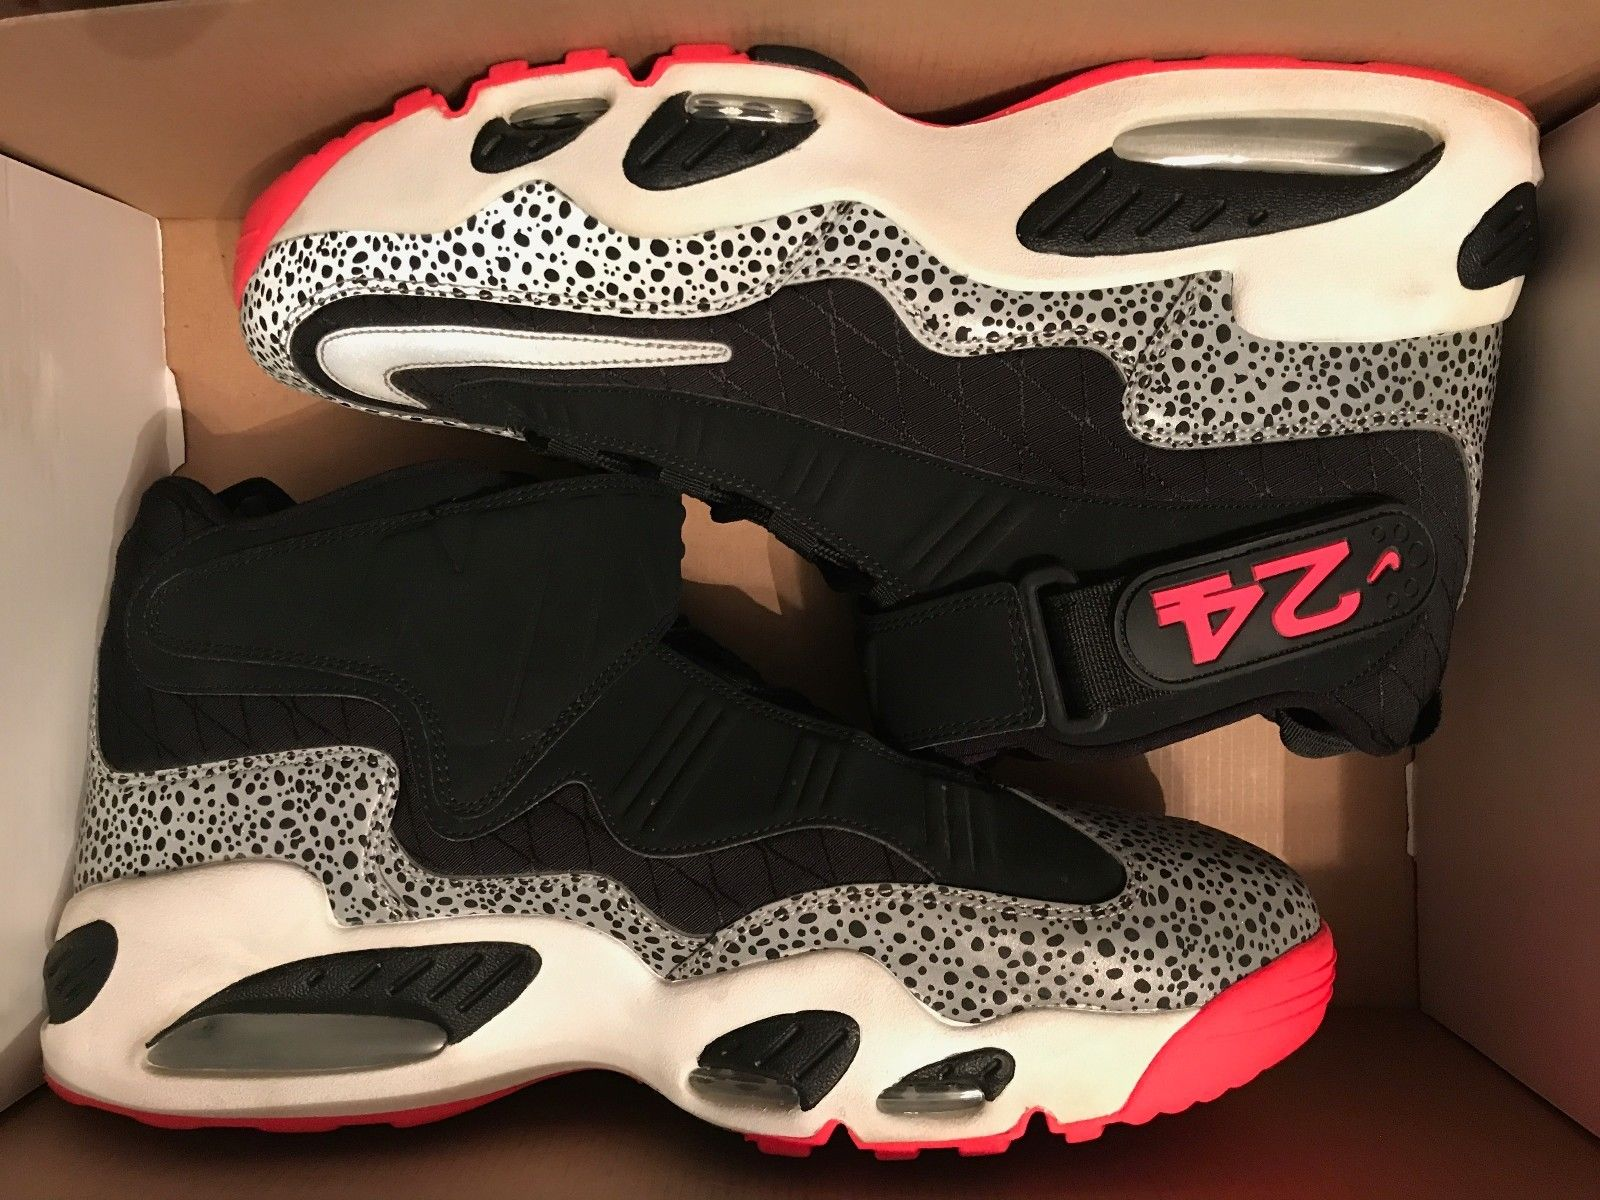 Image of Nike Air Griffey Max 1 - Black Silver Red 586090-001 - Size 13 Used